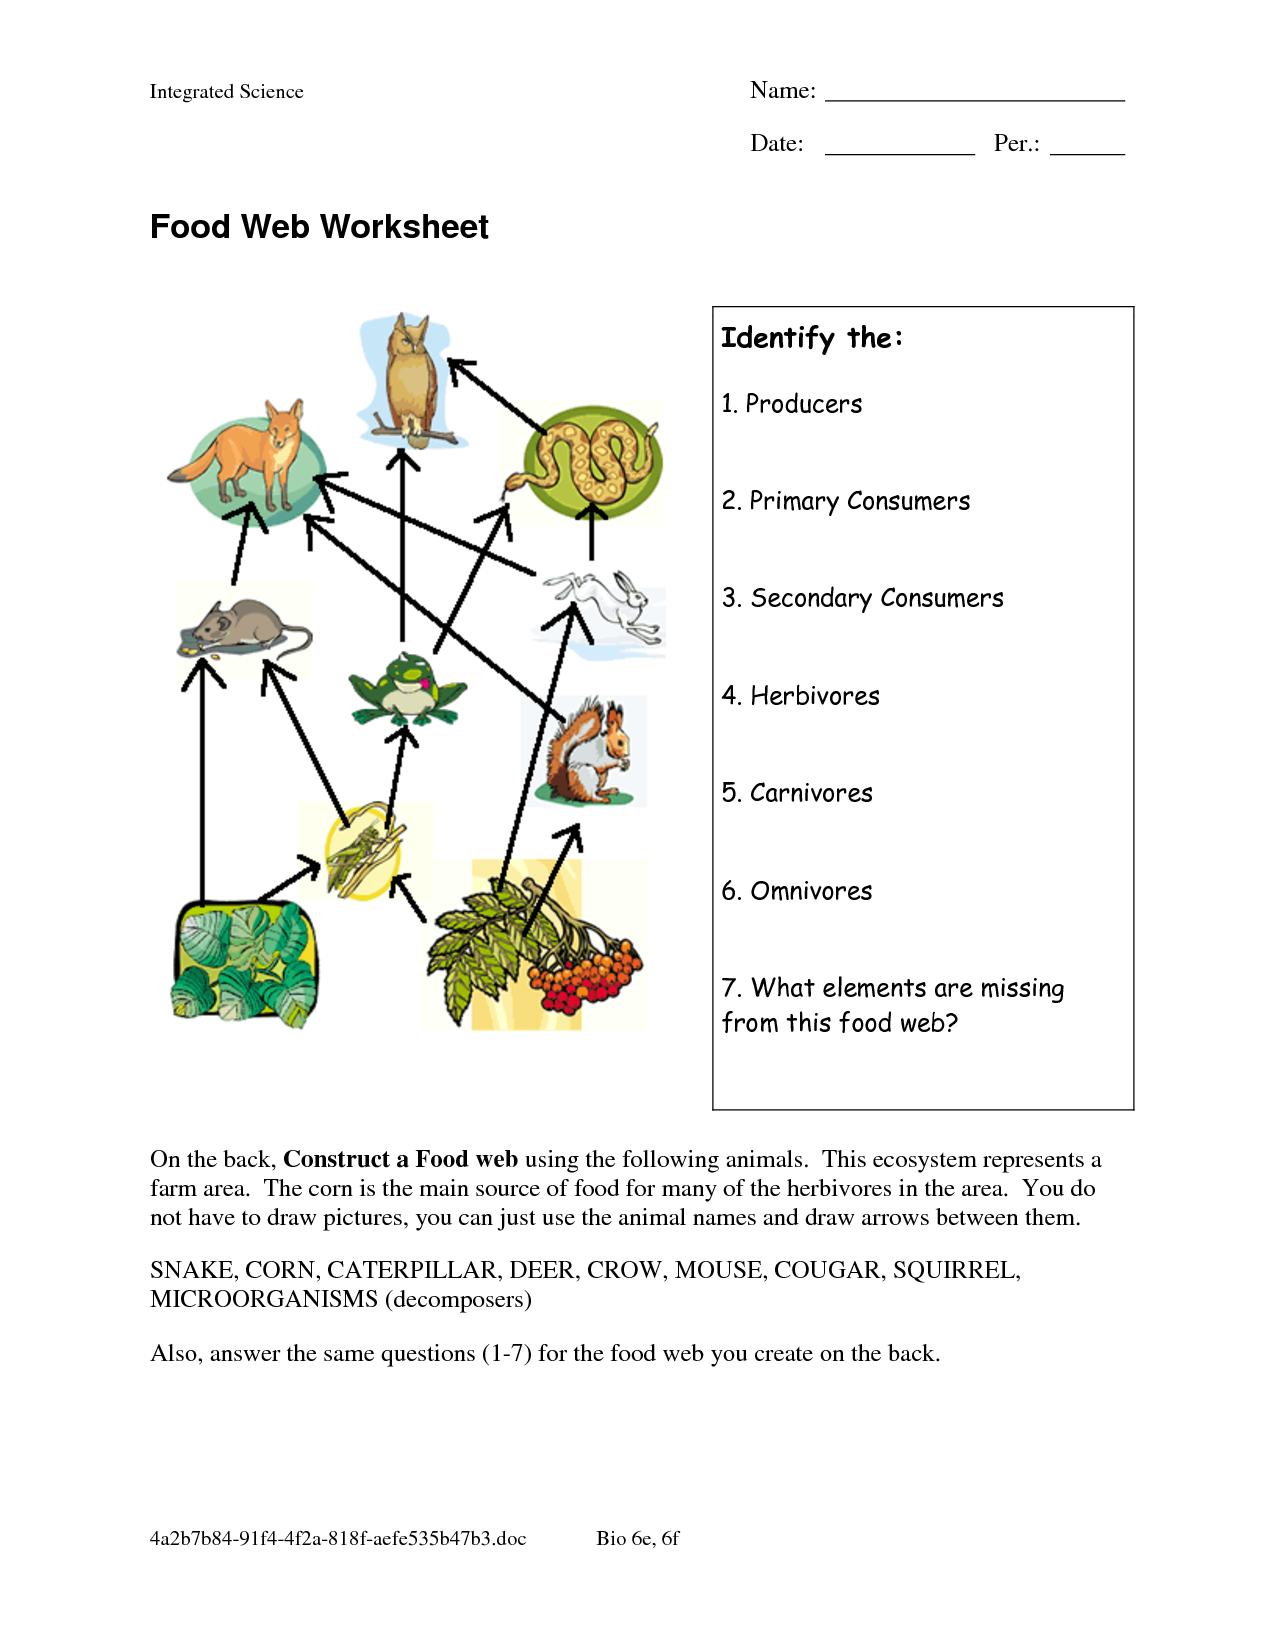 Food Web Worksheets | Food Web Worksheet - DOC | Interesting | Food ...